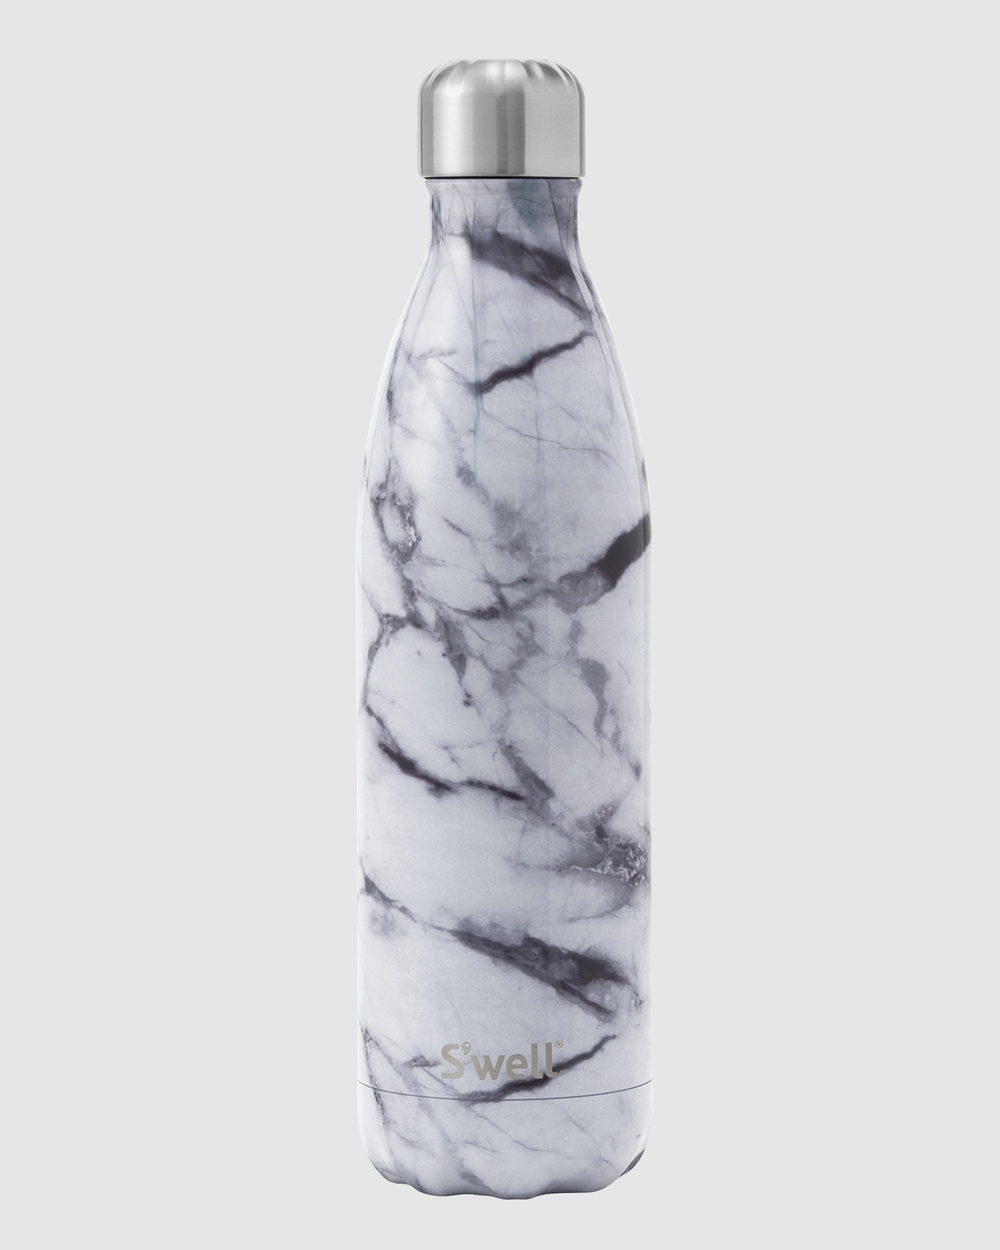 S'well Insulated Bottle Elements Collection 750ml Water Bottles Grey